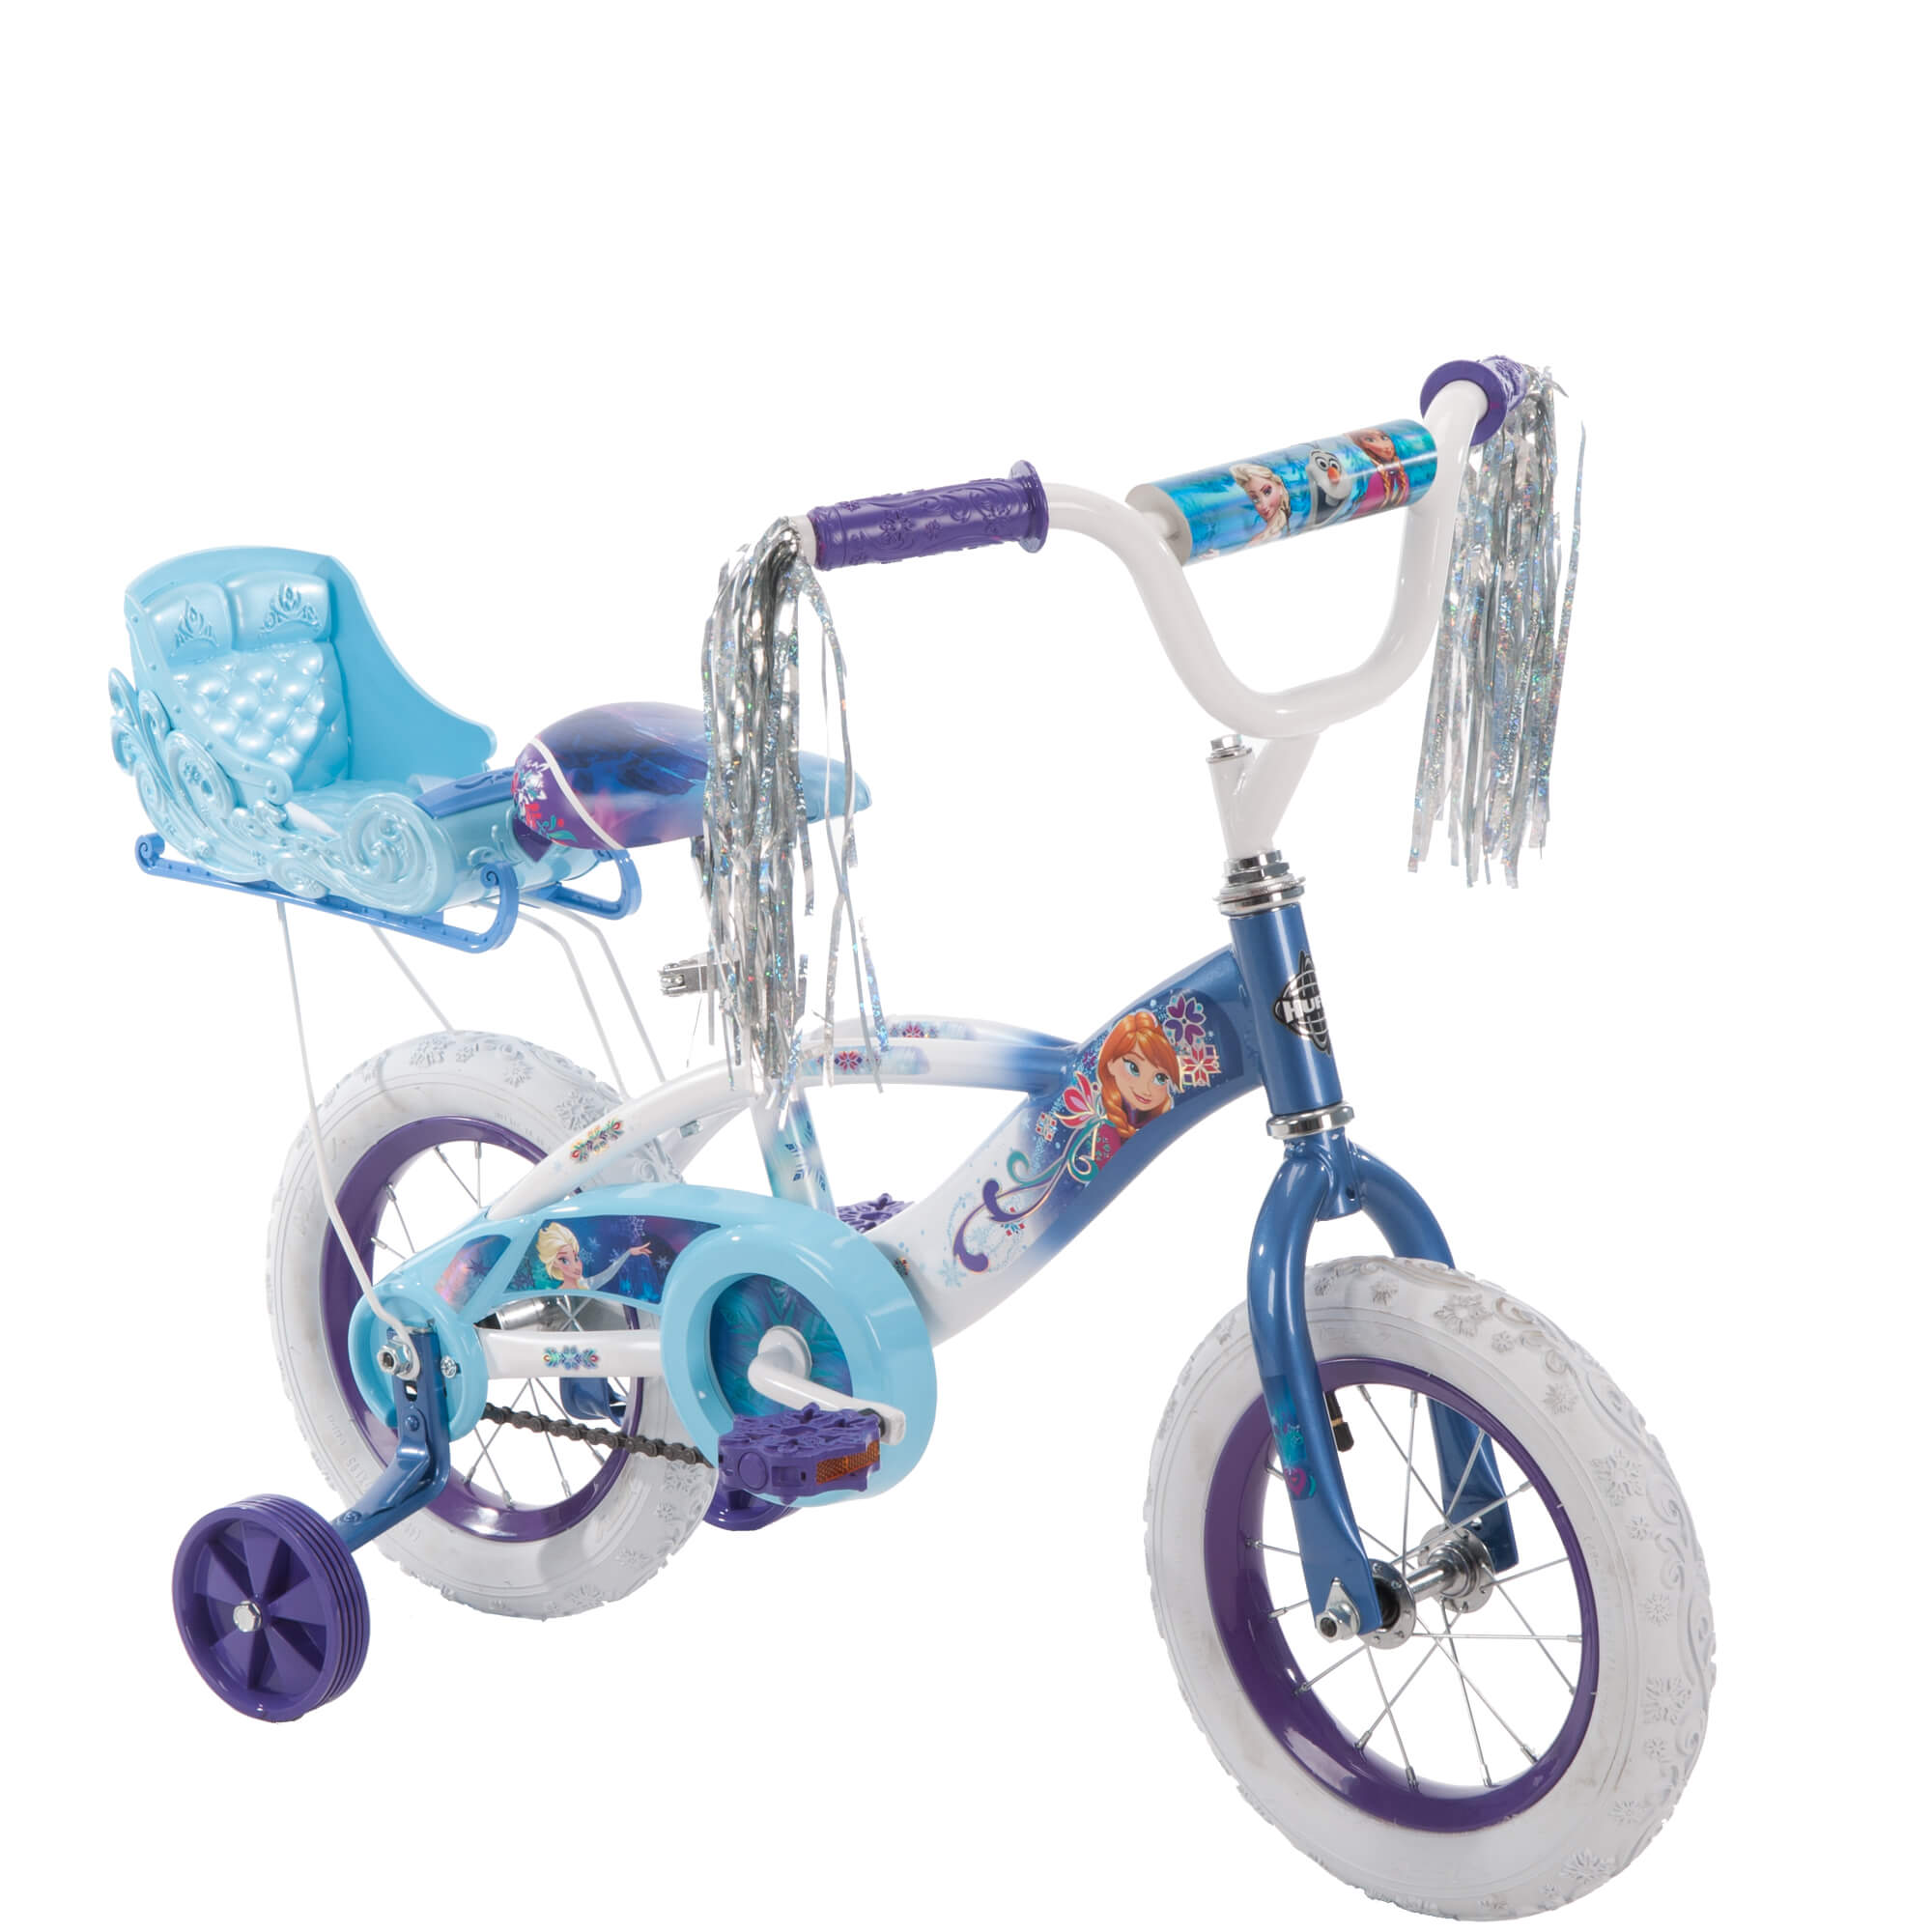 "Disney Frozen 12"" Blue Girls' Bike with Sleigh, by Huffy"